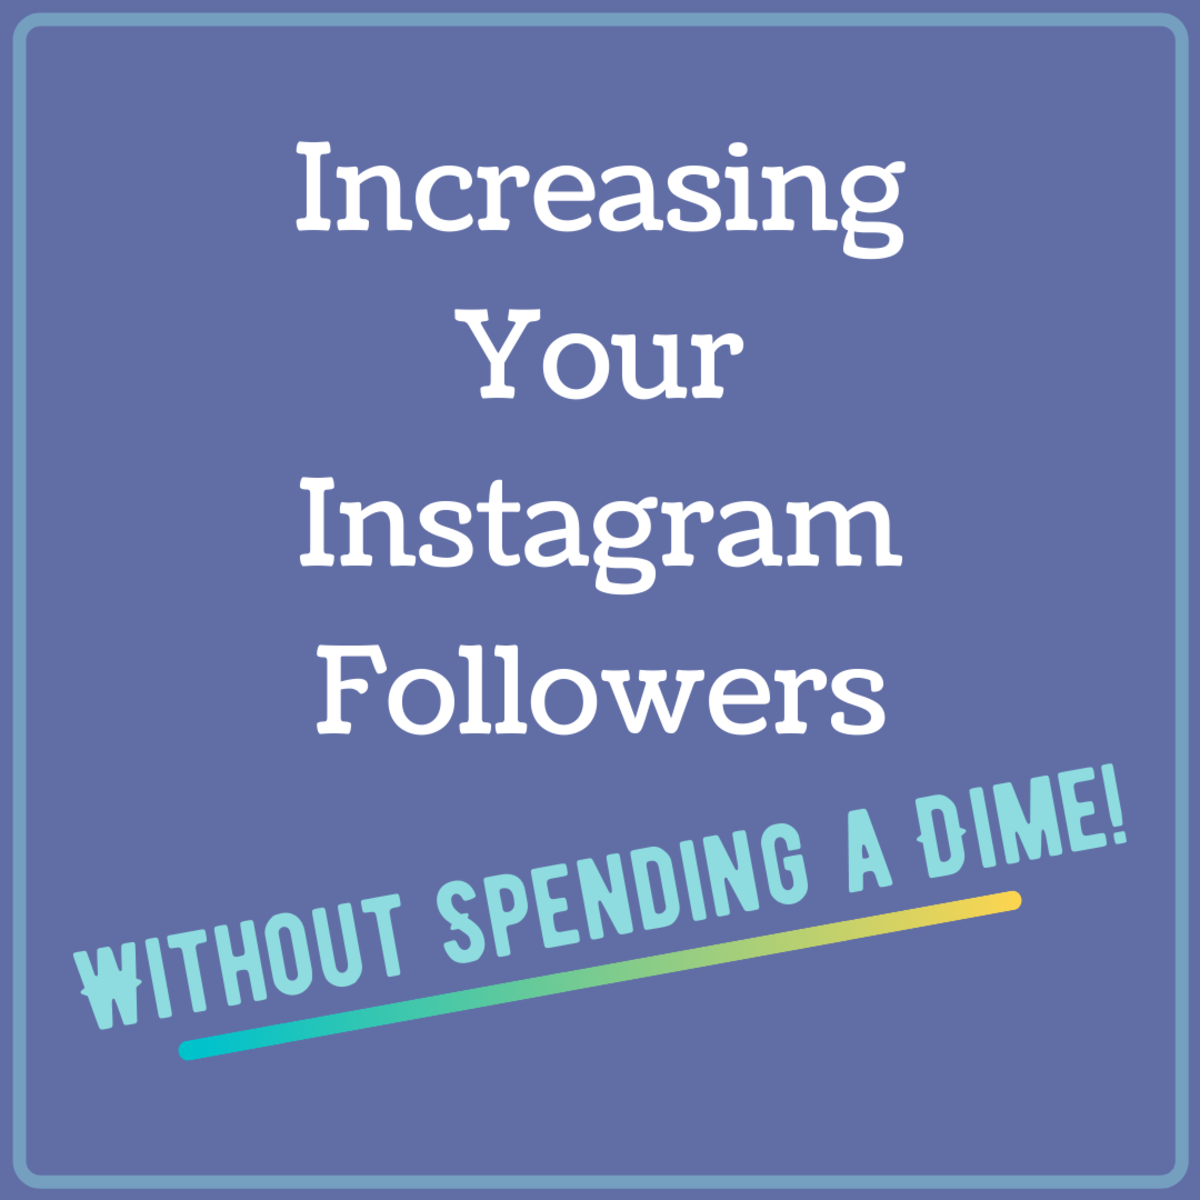 Get advice on some no-cost strategies you can use to increase your followers on Instagram.